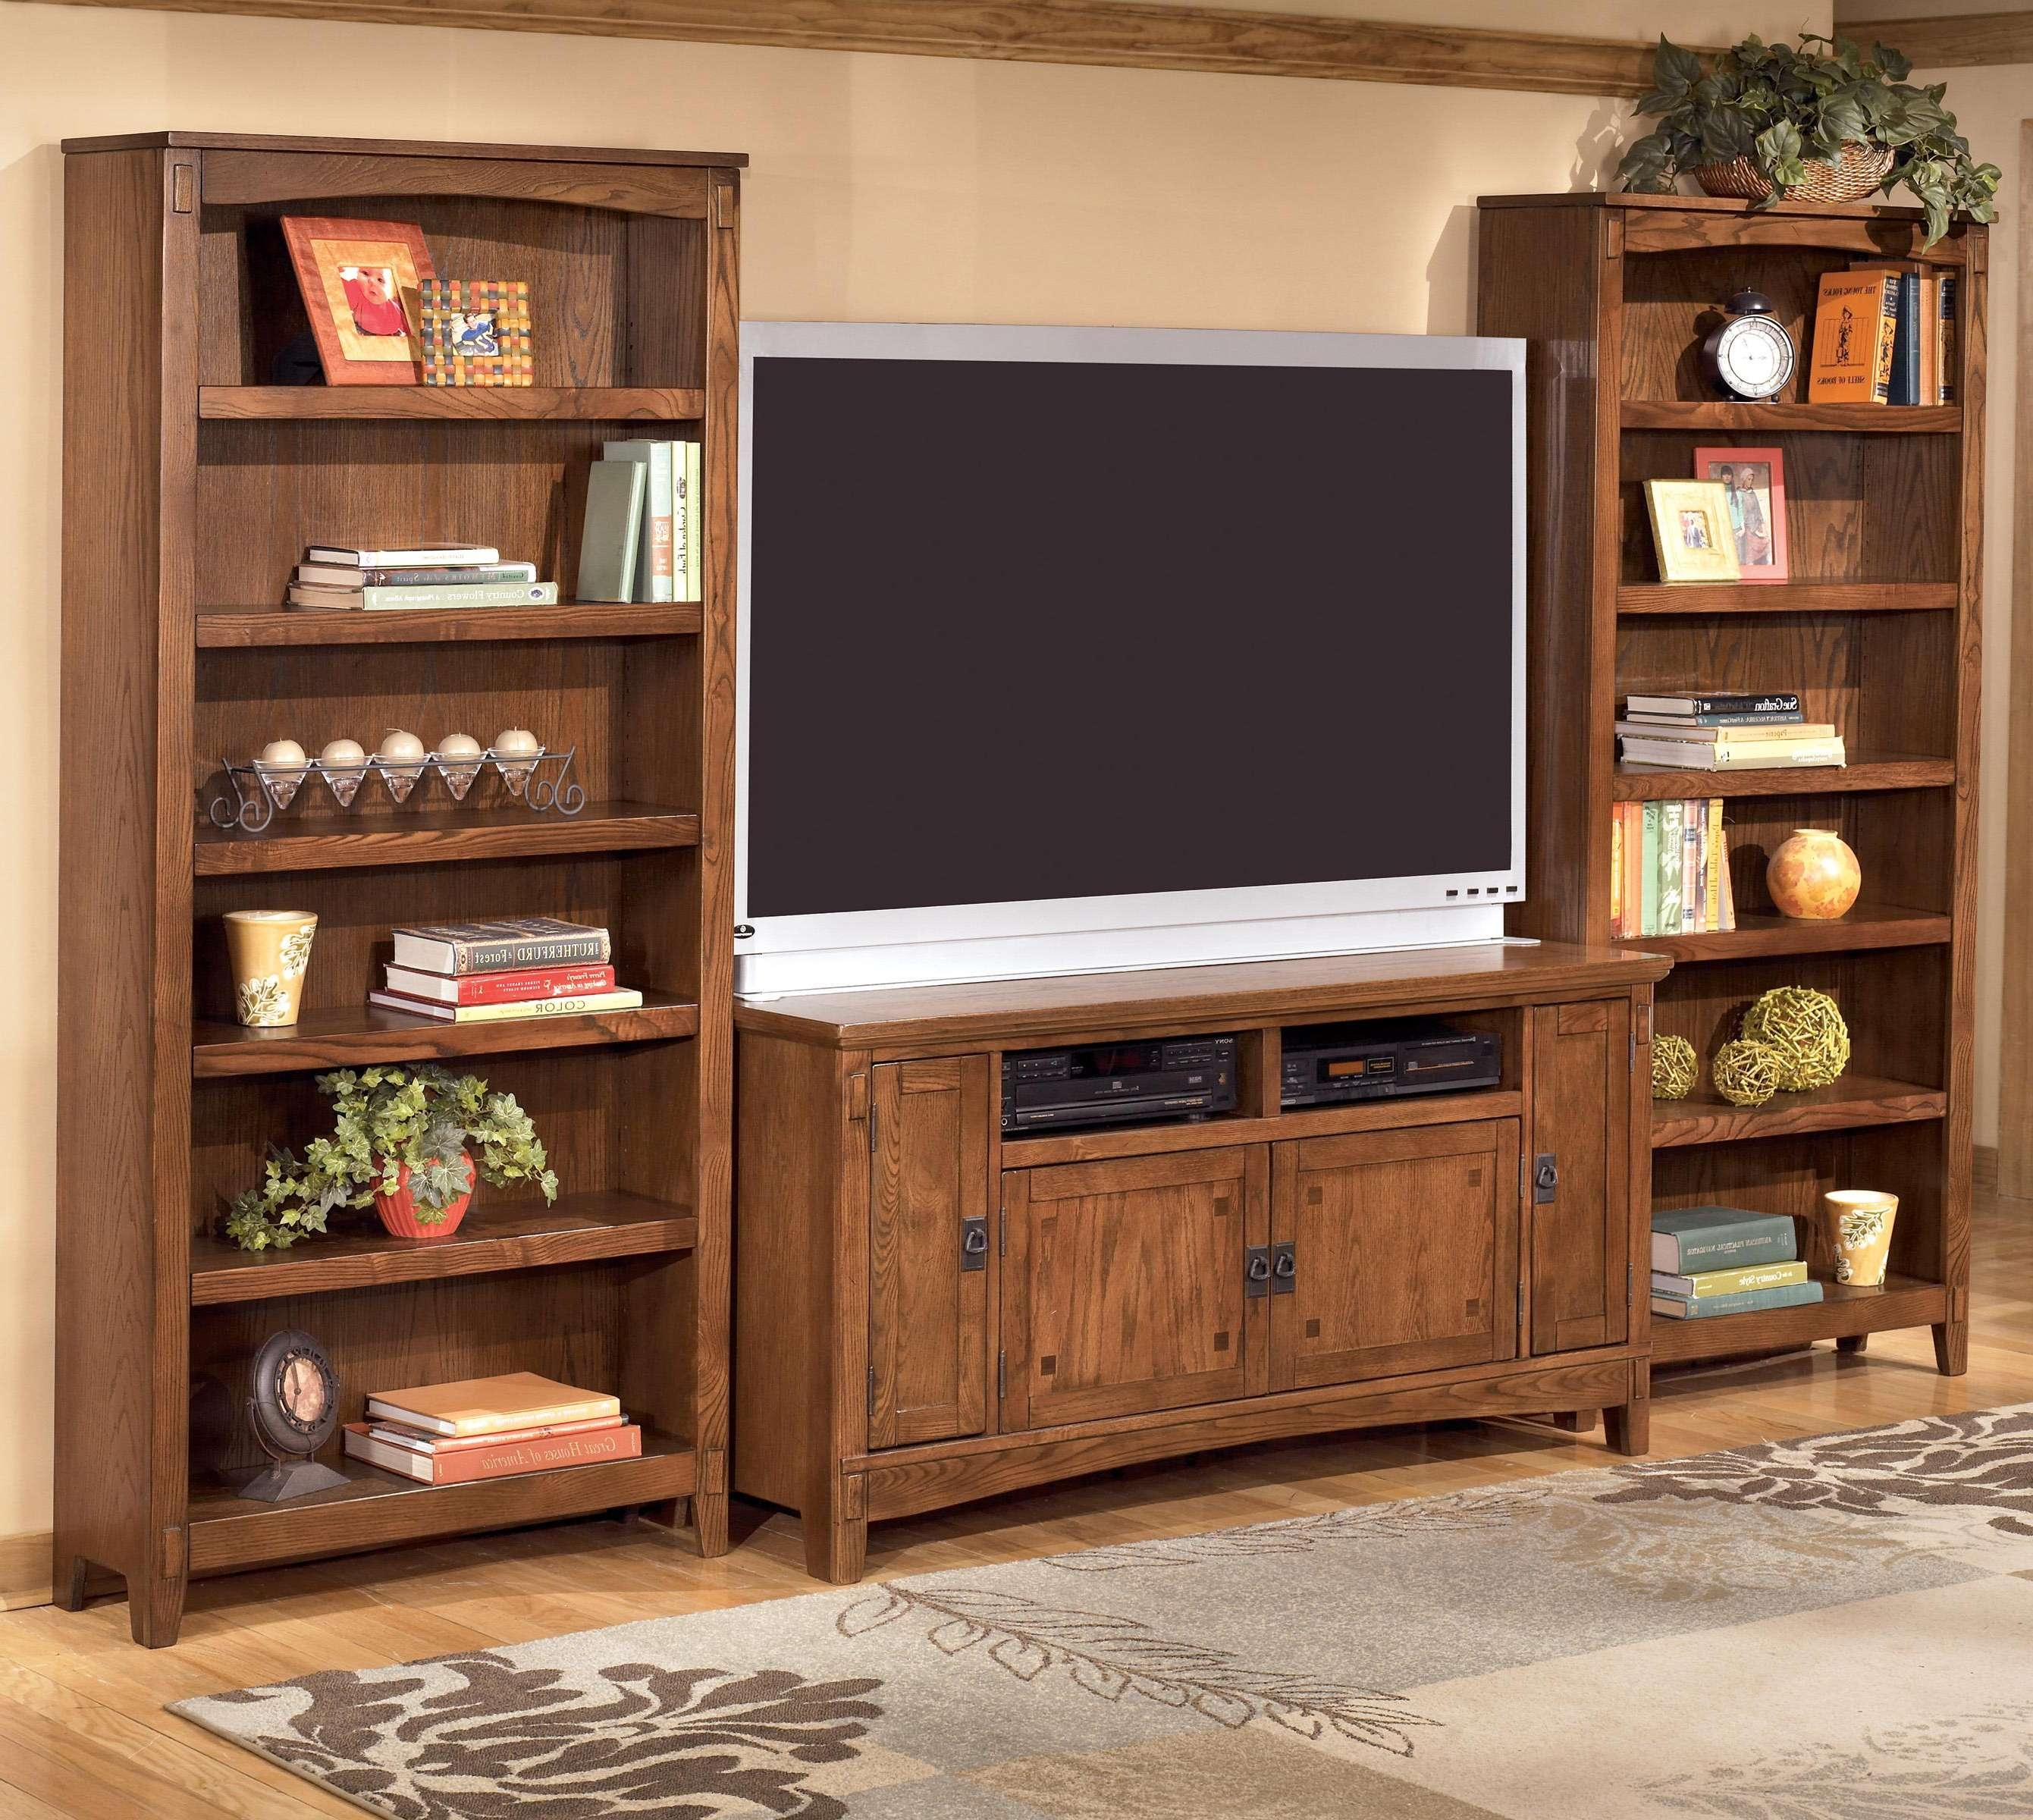 Bedroom Design : Awesome 40 Inch Tv Stand Simple Tv Stand Rustic Intended For Rustic 60 Inch Tv Stands (View 2 of 15)